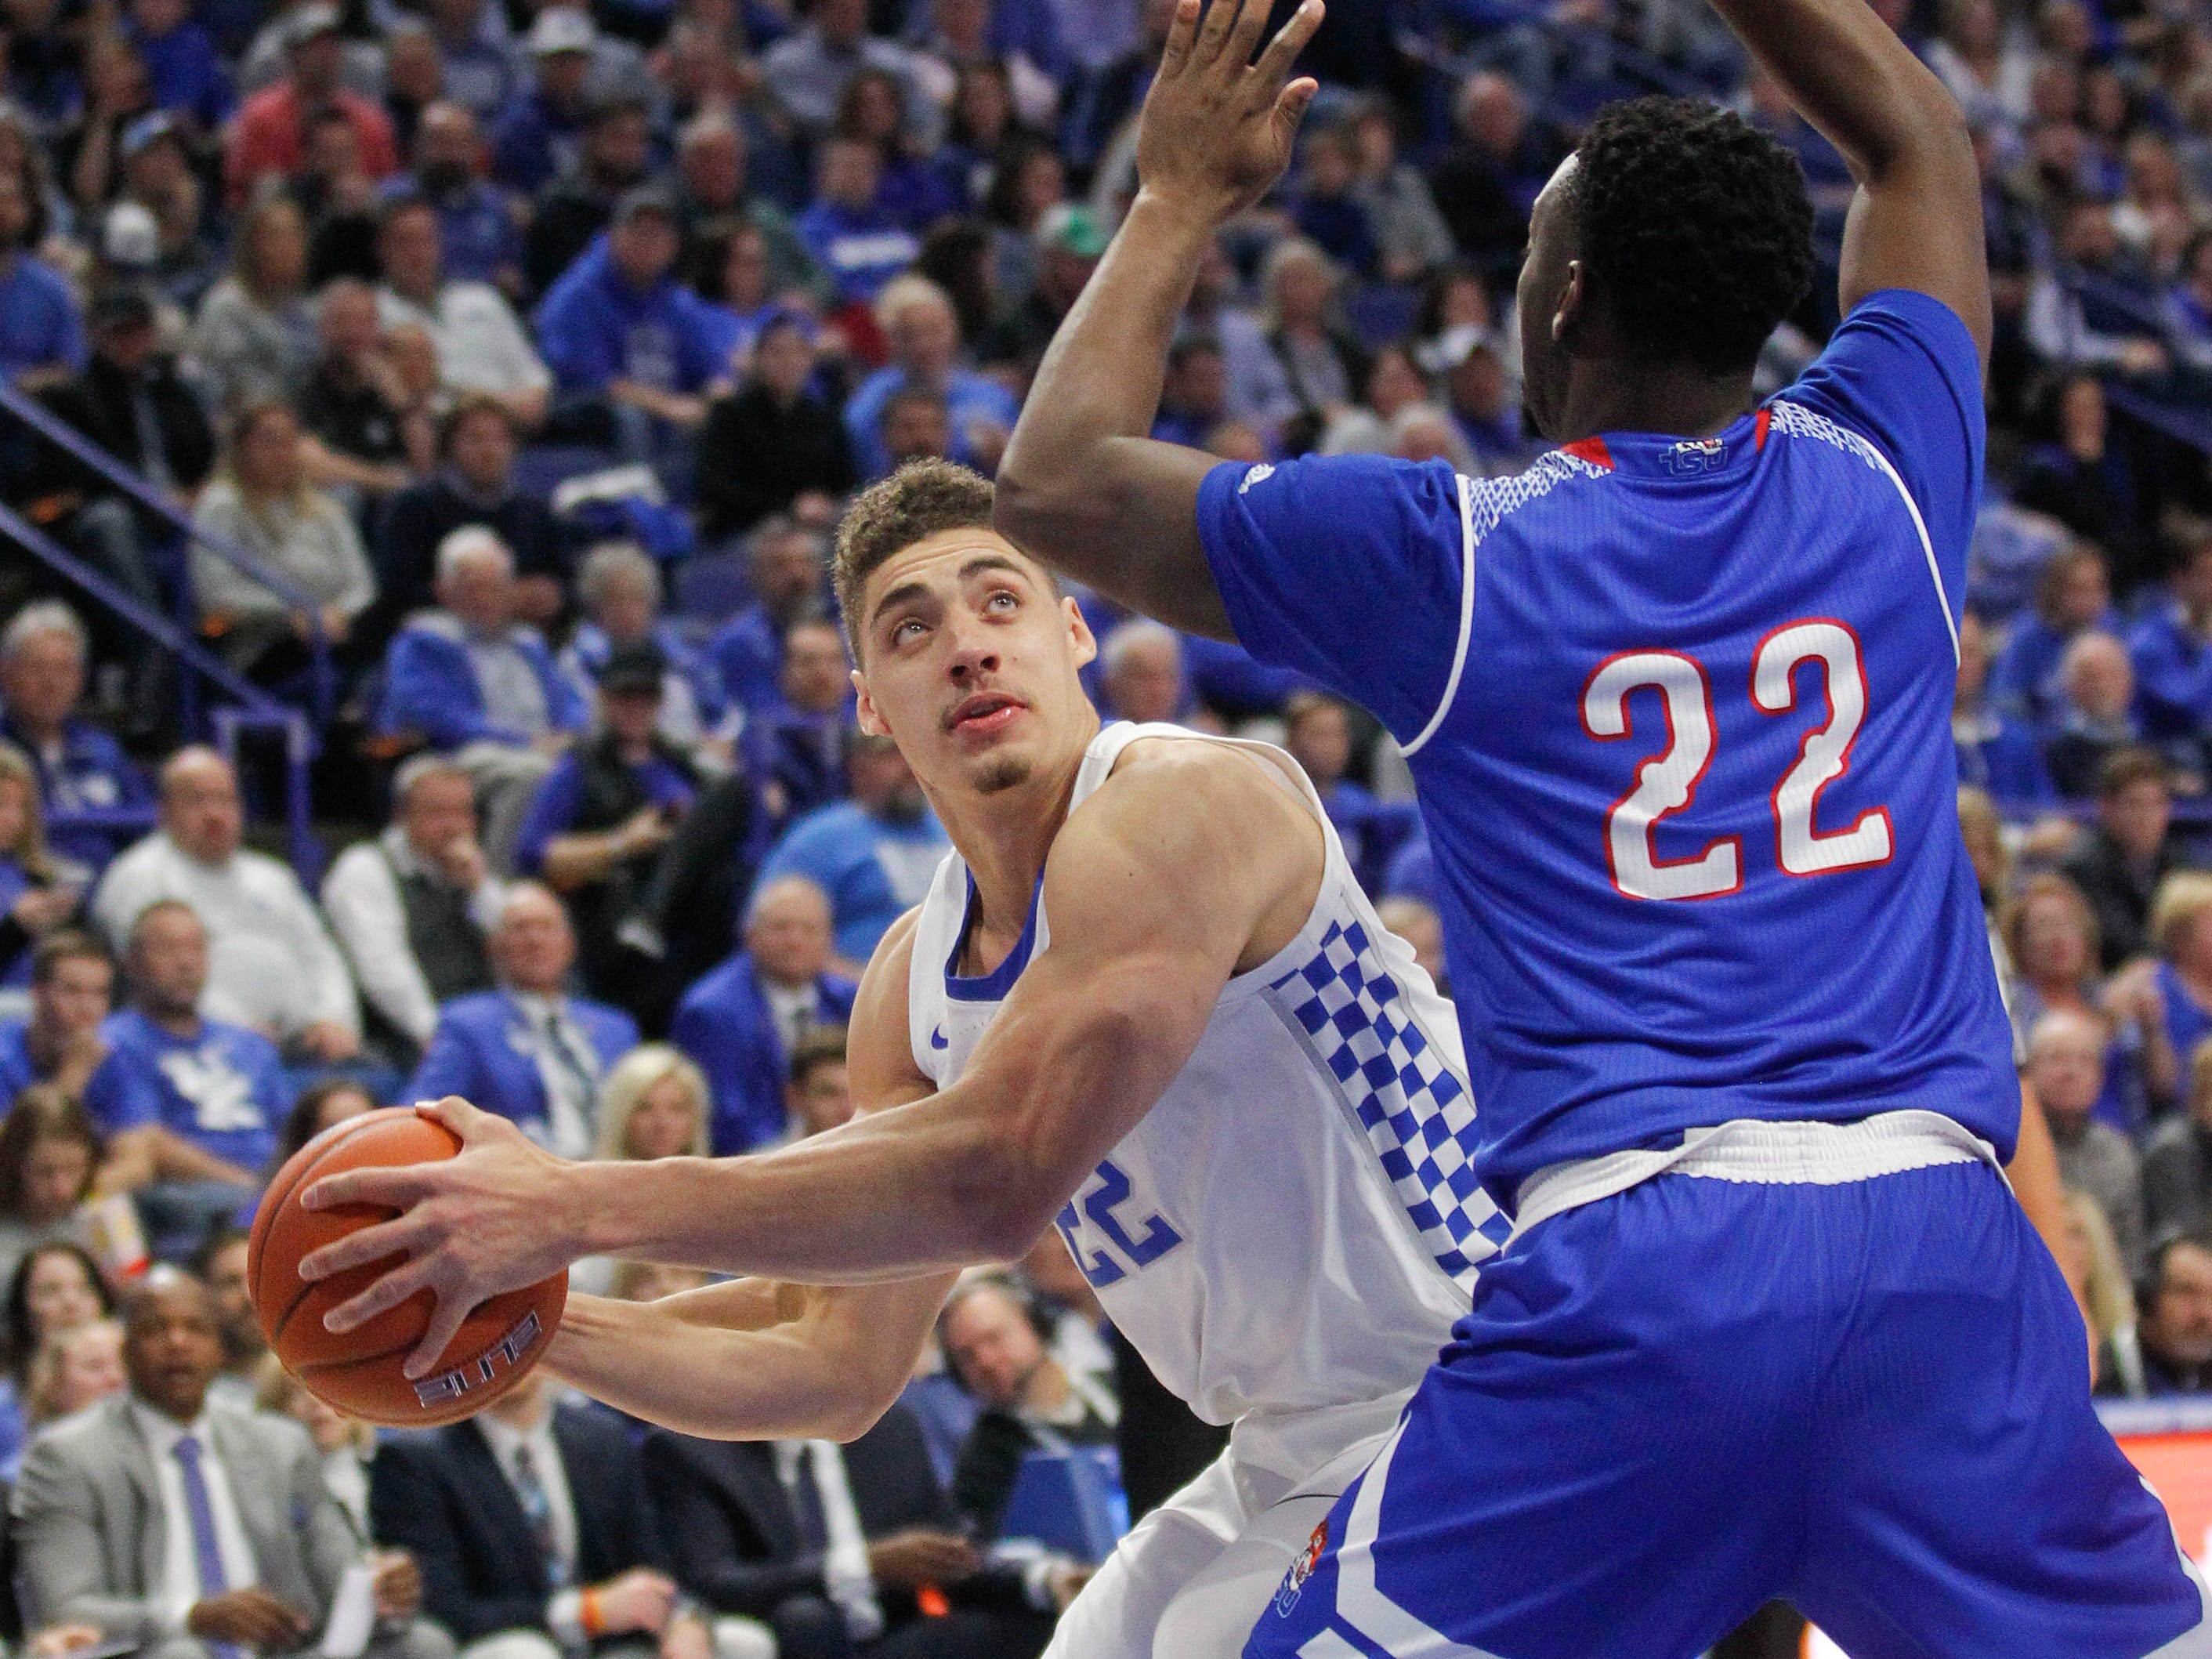 Nov 23, 2018; Lexington, KY, USA; Kentucky Wildcats forward Reid Travis (22) passes the ball against Tennessee State Tigers guard Daniel Cummings (22) in the first half at Rupp Arena.